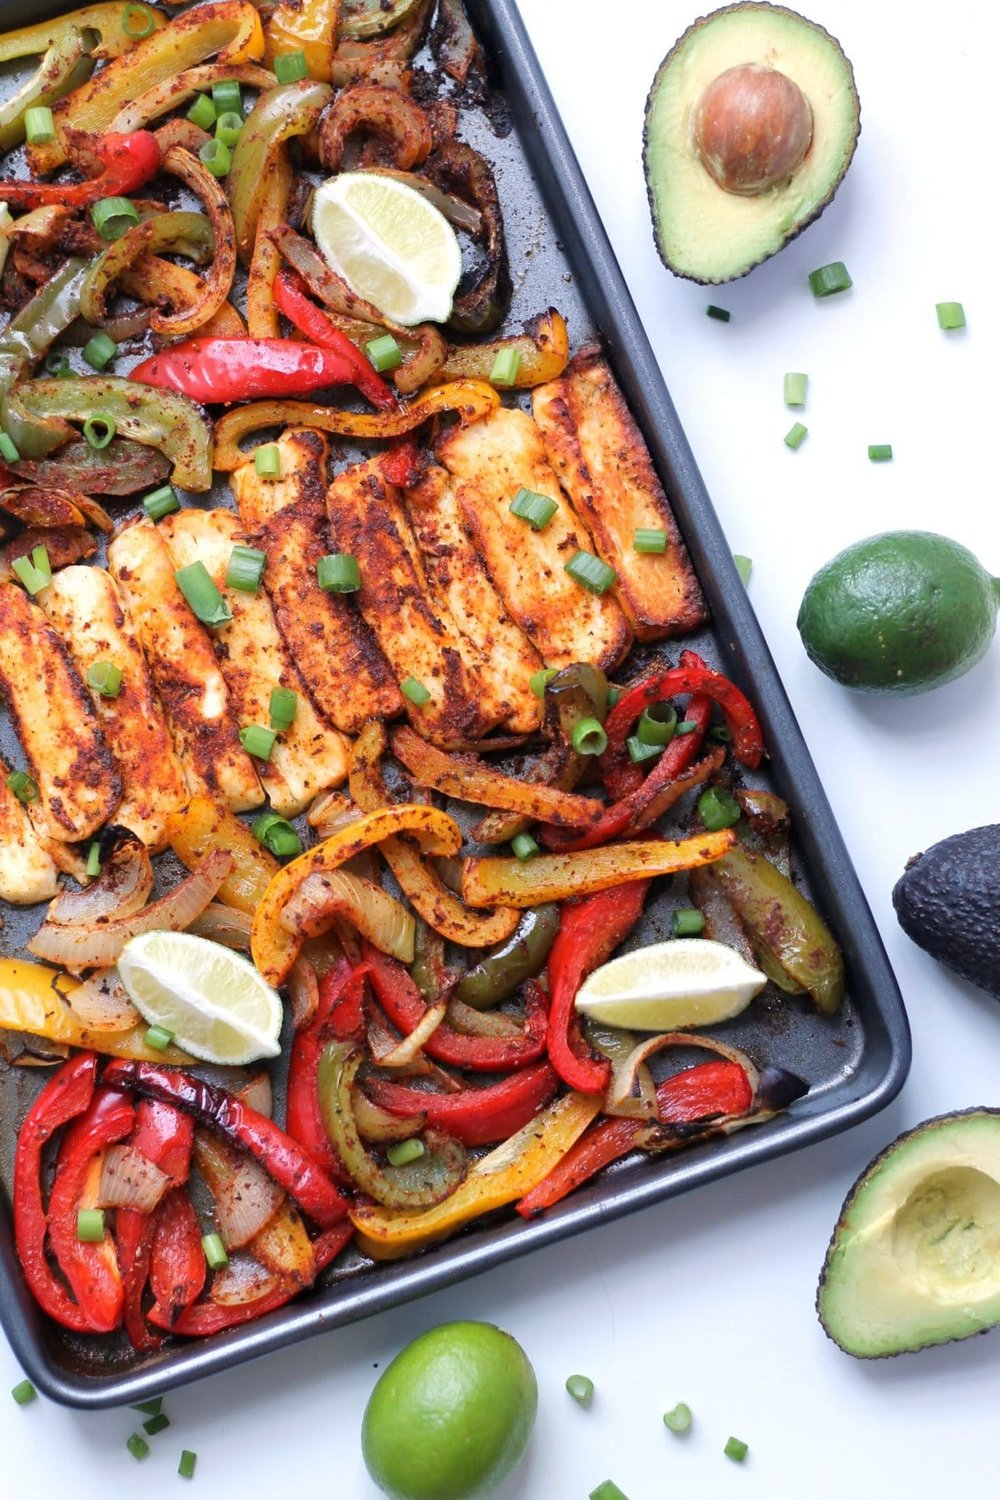 Halloumi Fajitas from Wonder Kids